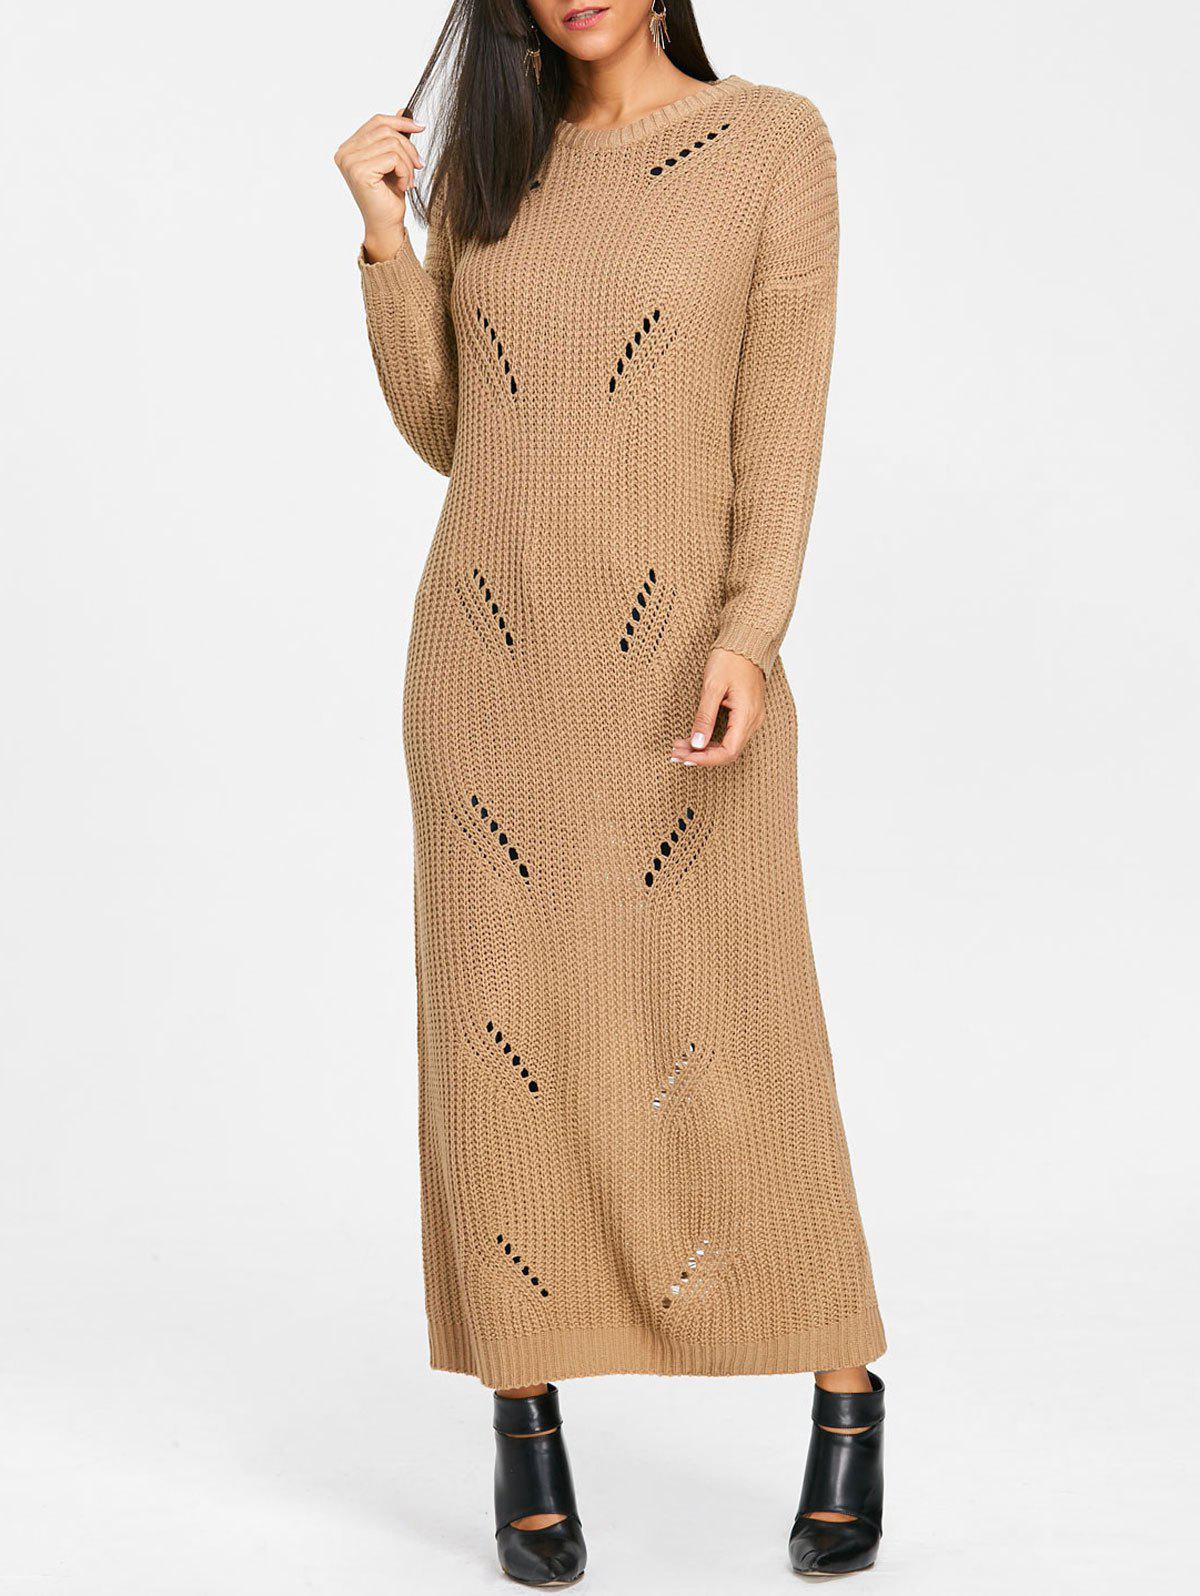 Ripped Chunky Knit Long Dress - KHAKI L